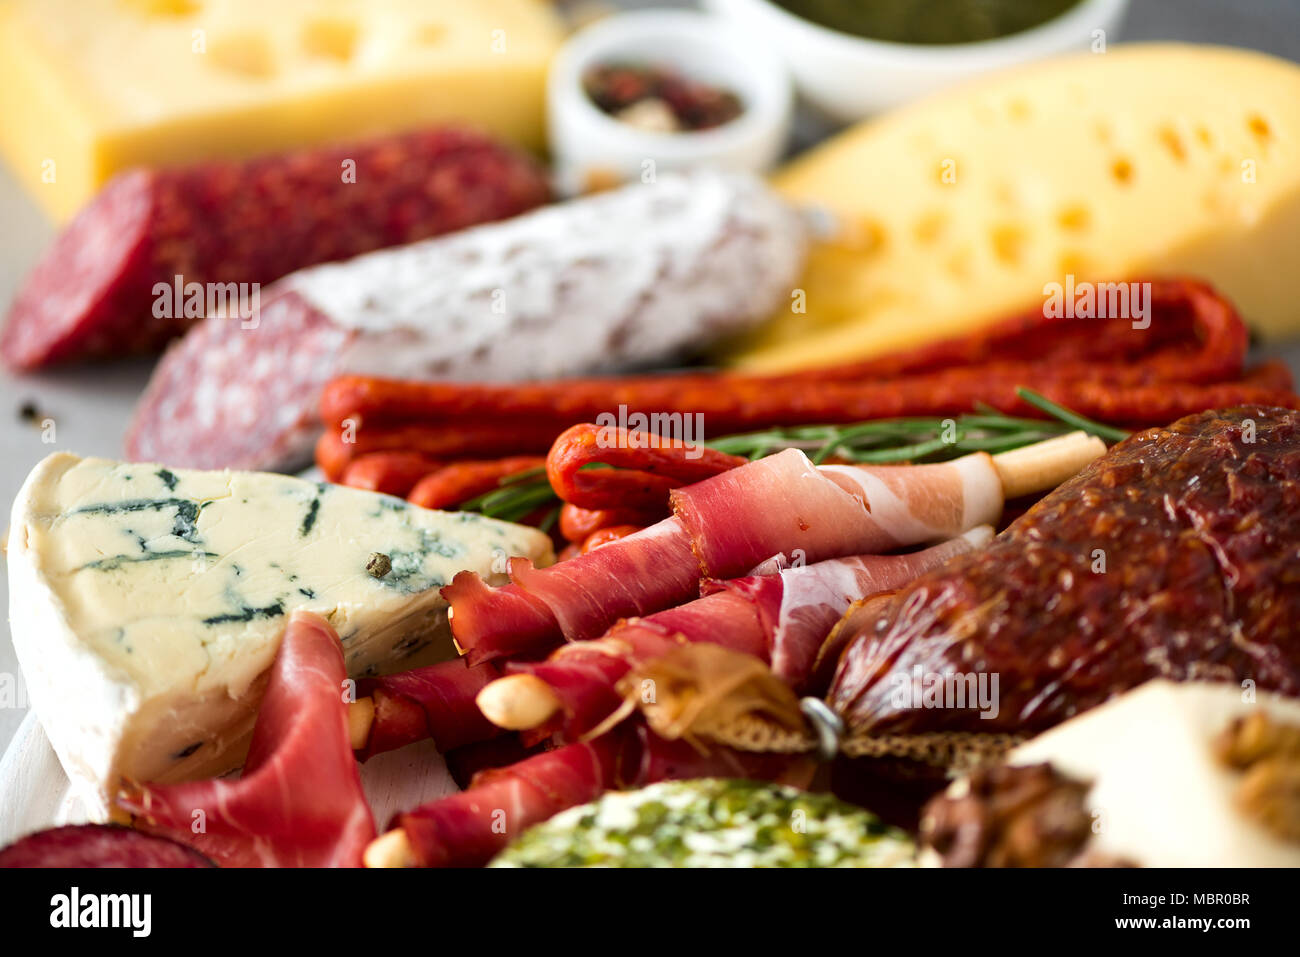 Cold smoked meat plate. Traditional italian antipasto, cutting board with salami, prosciutto, ham, pork chops, olives on grey background. Top view, copy space, flat lay - Stock Image